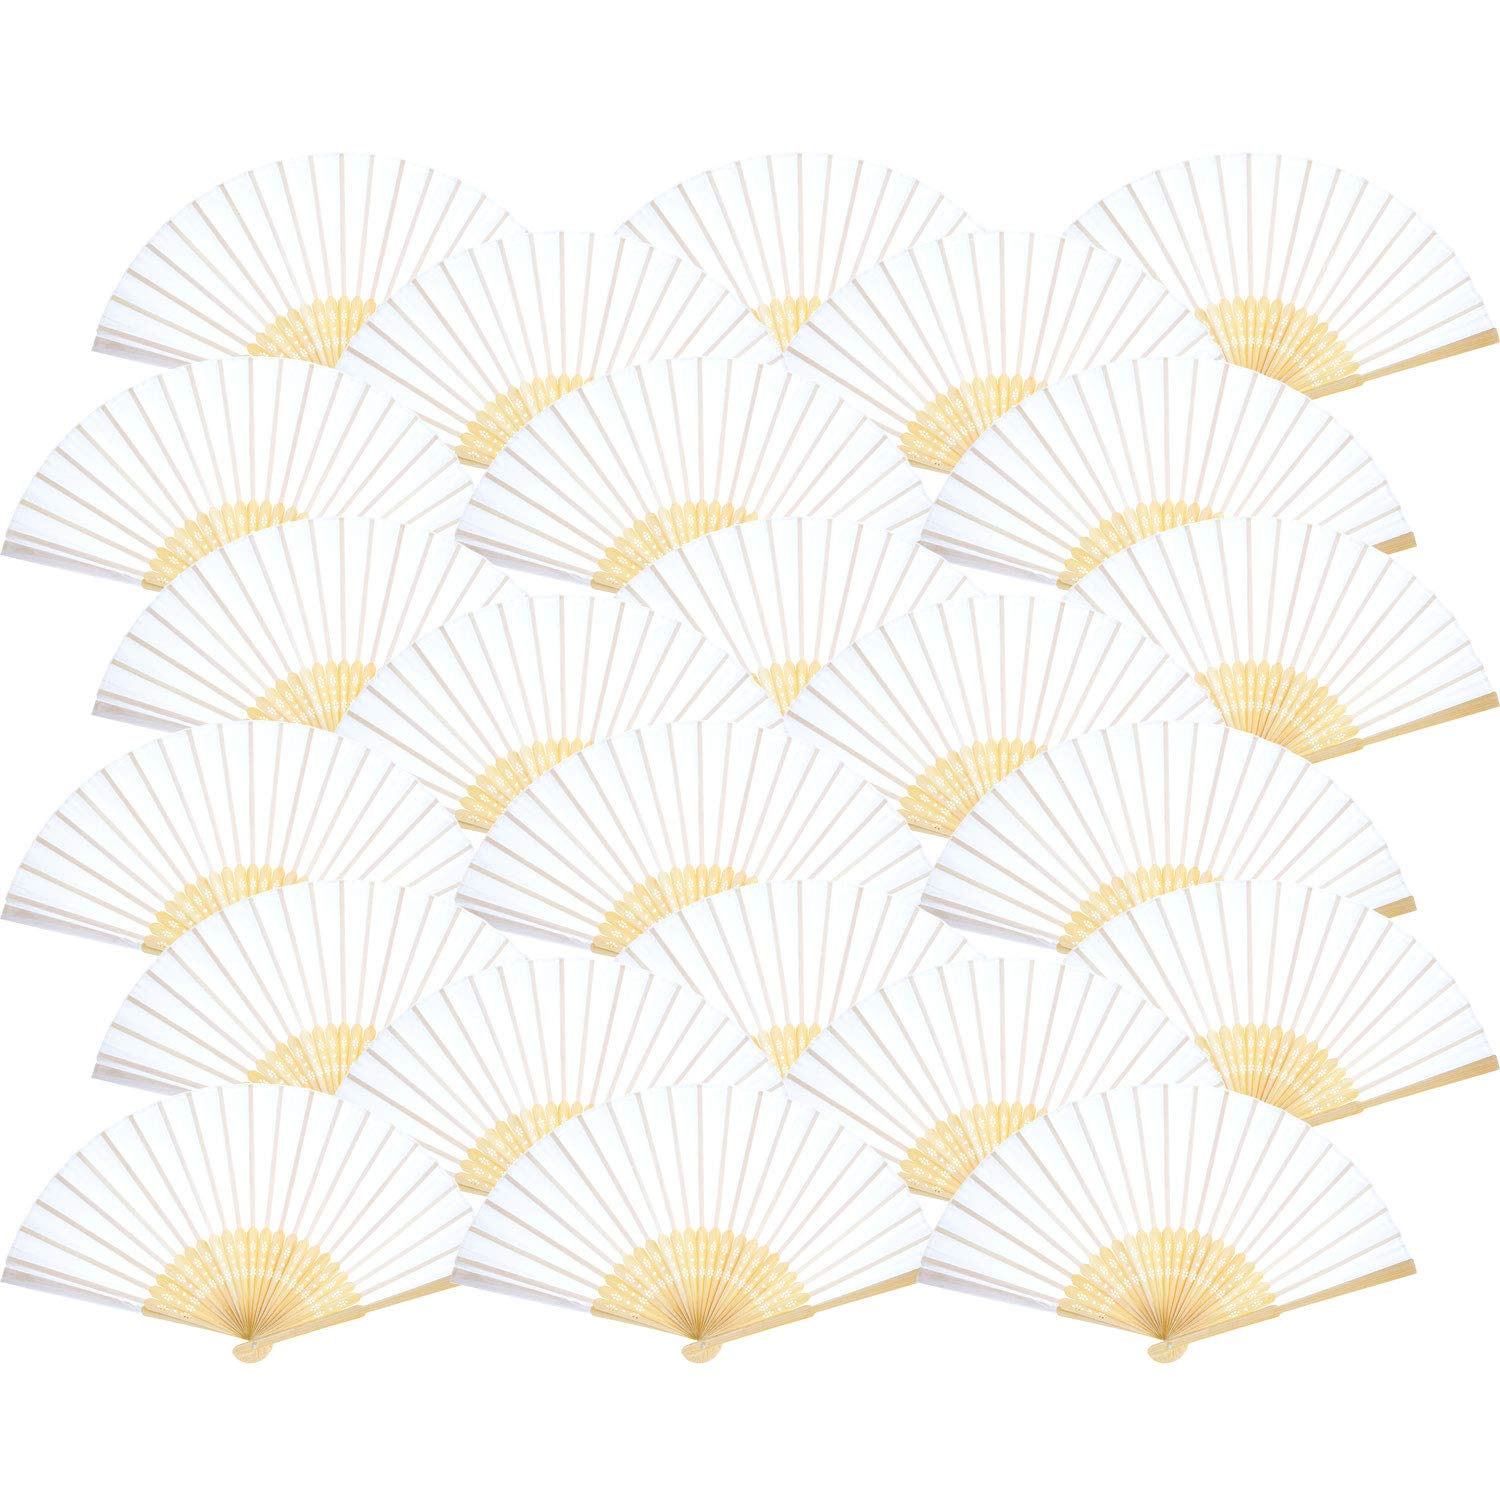 Bememo Hand Held Fans Silk Bamboo Folding Fans Handheld Folded Fan for Church Wedding Gift, Party Favors, DIY Decoration (White, 24 Pack)